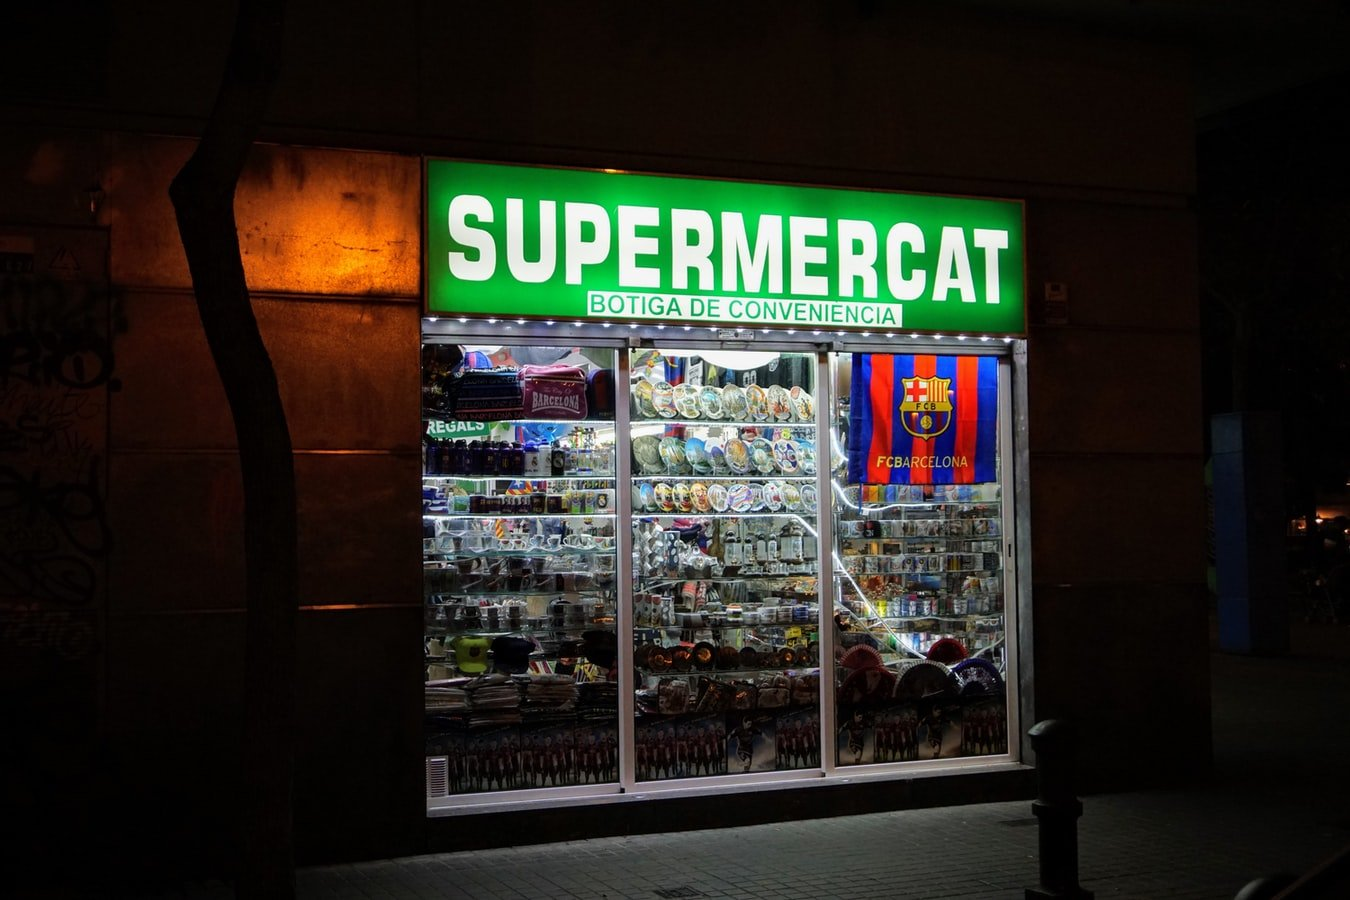 a photo of a supermercat in Spain